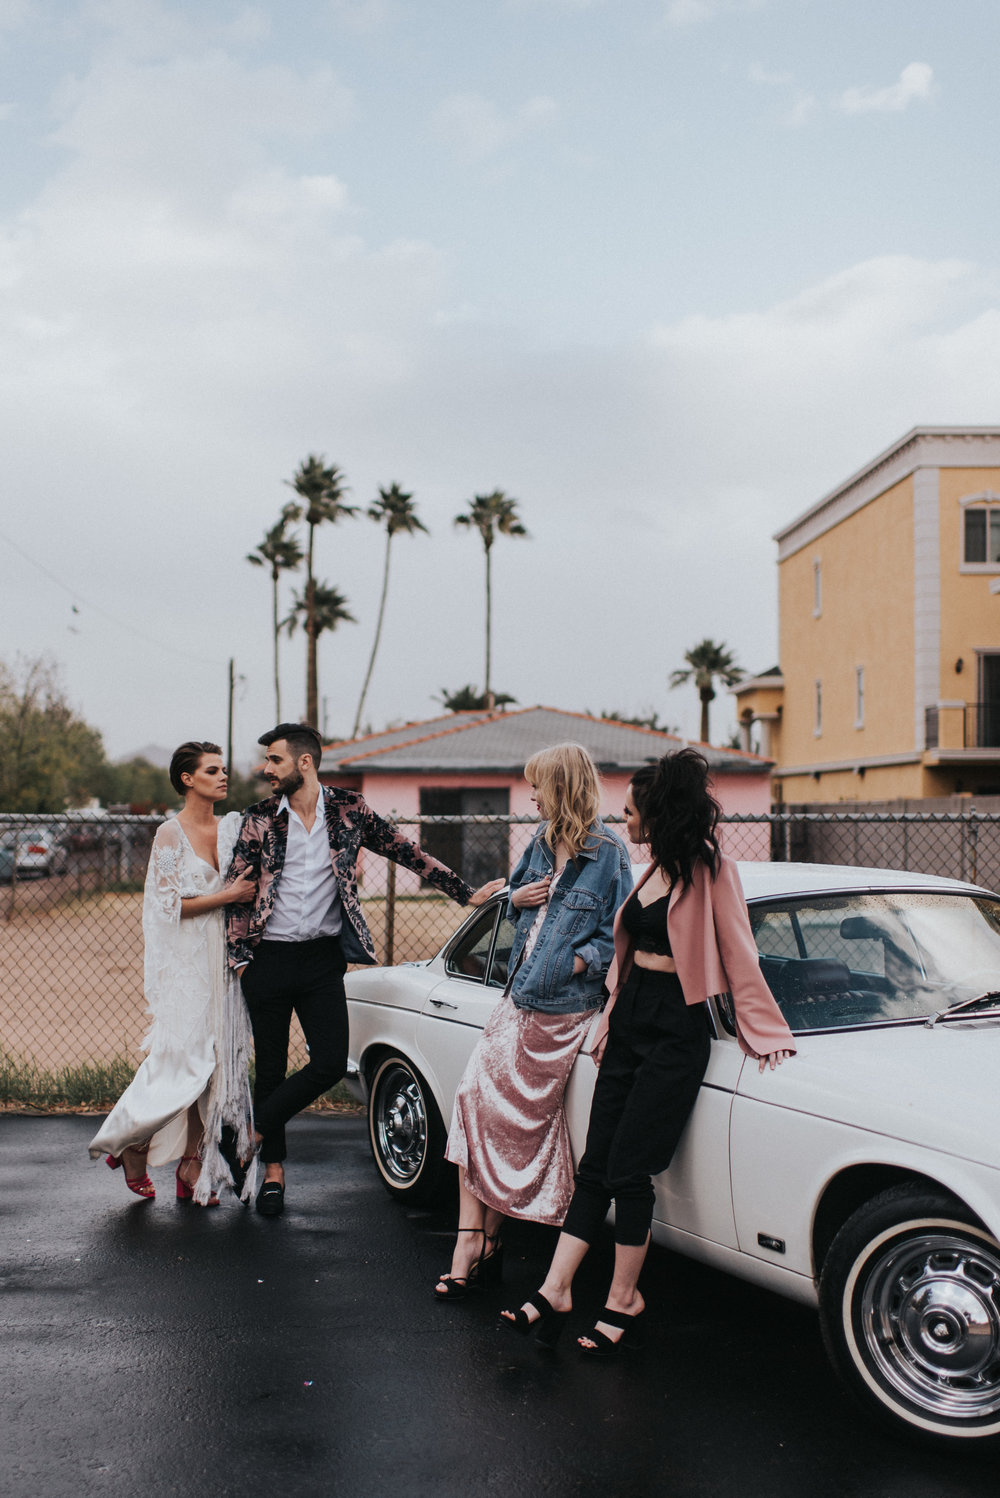 Millennial Pink Inspired Wedding - Grand Exit in a Classic Car